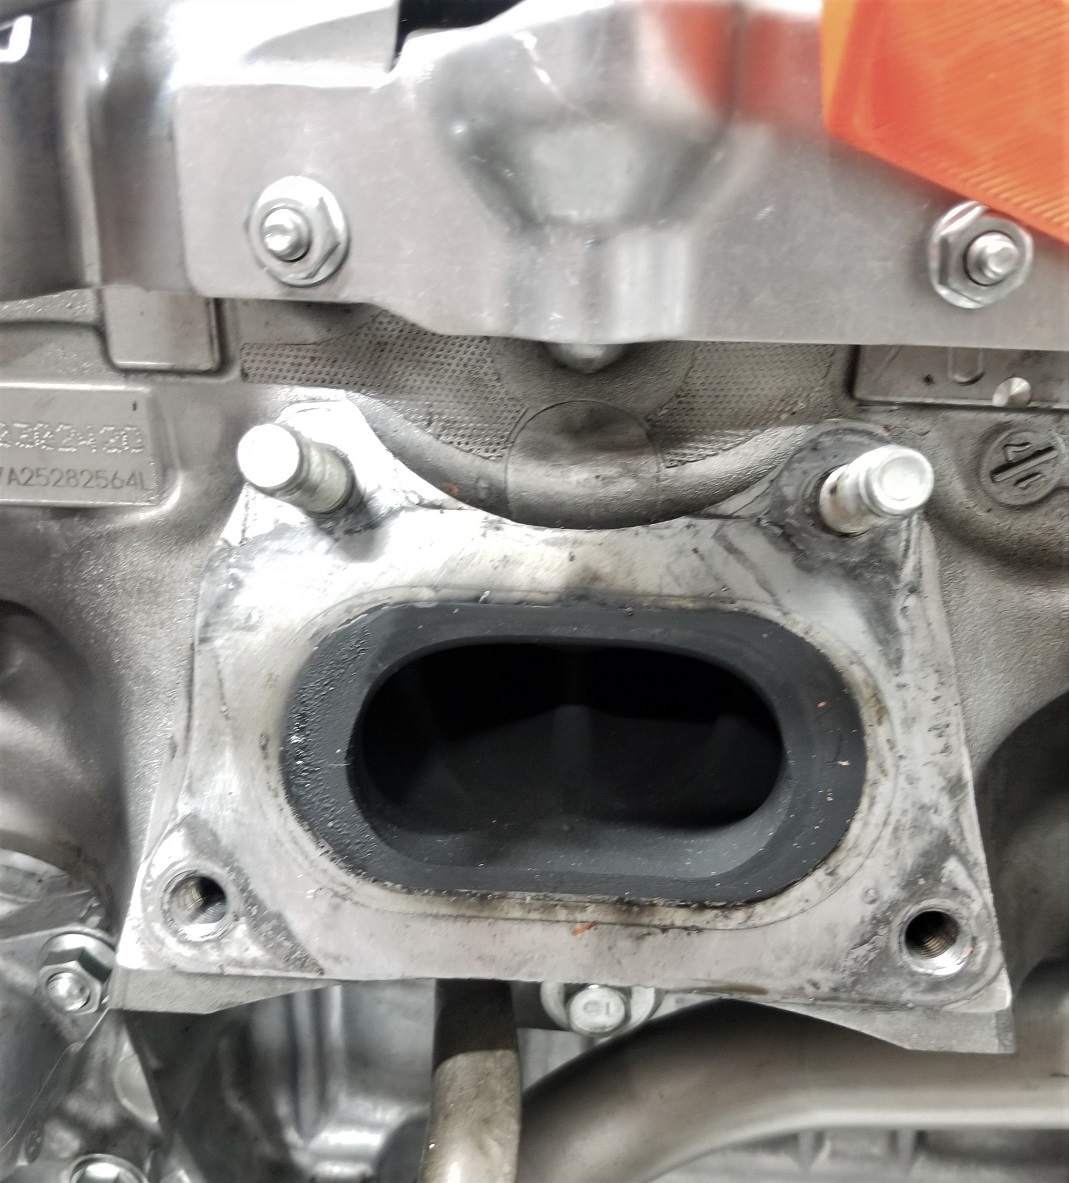 The single exit exhaust port on an L15 engine, The turbocharger mounts directly to the cylinder head here